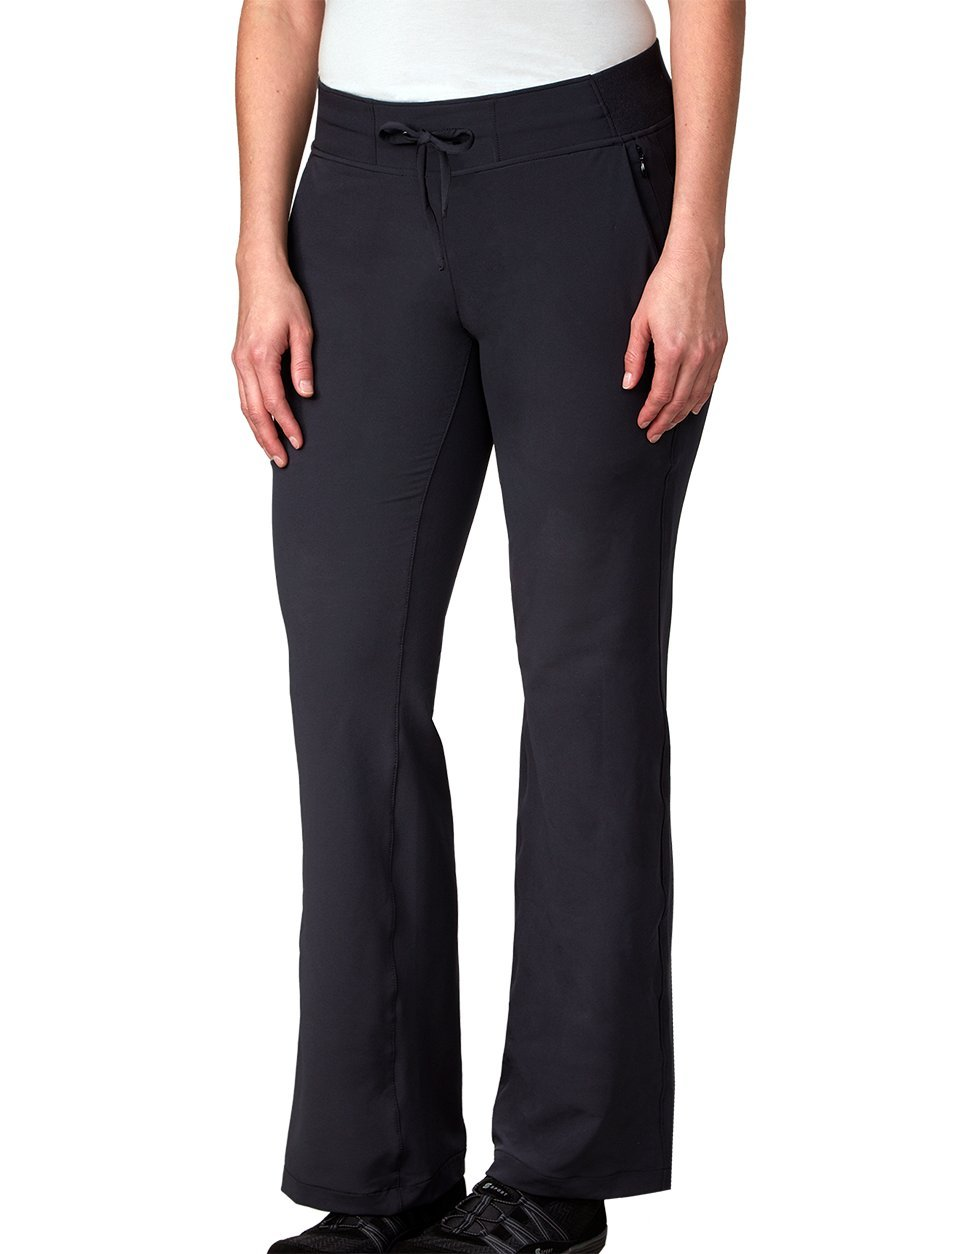 SCOTTeVEST Margaux Yogaux Pant - 7 Pockets - M